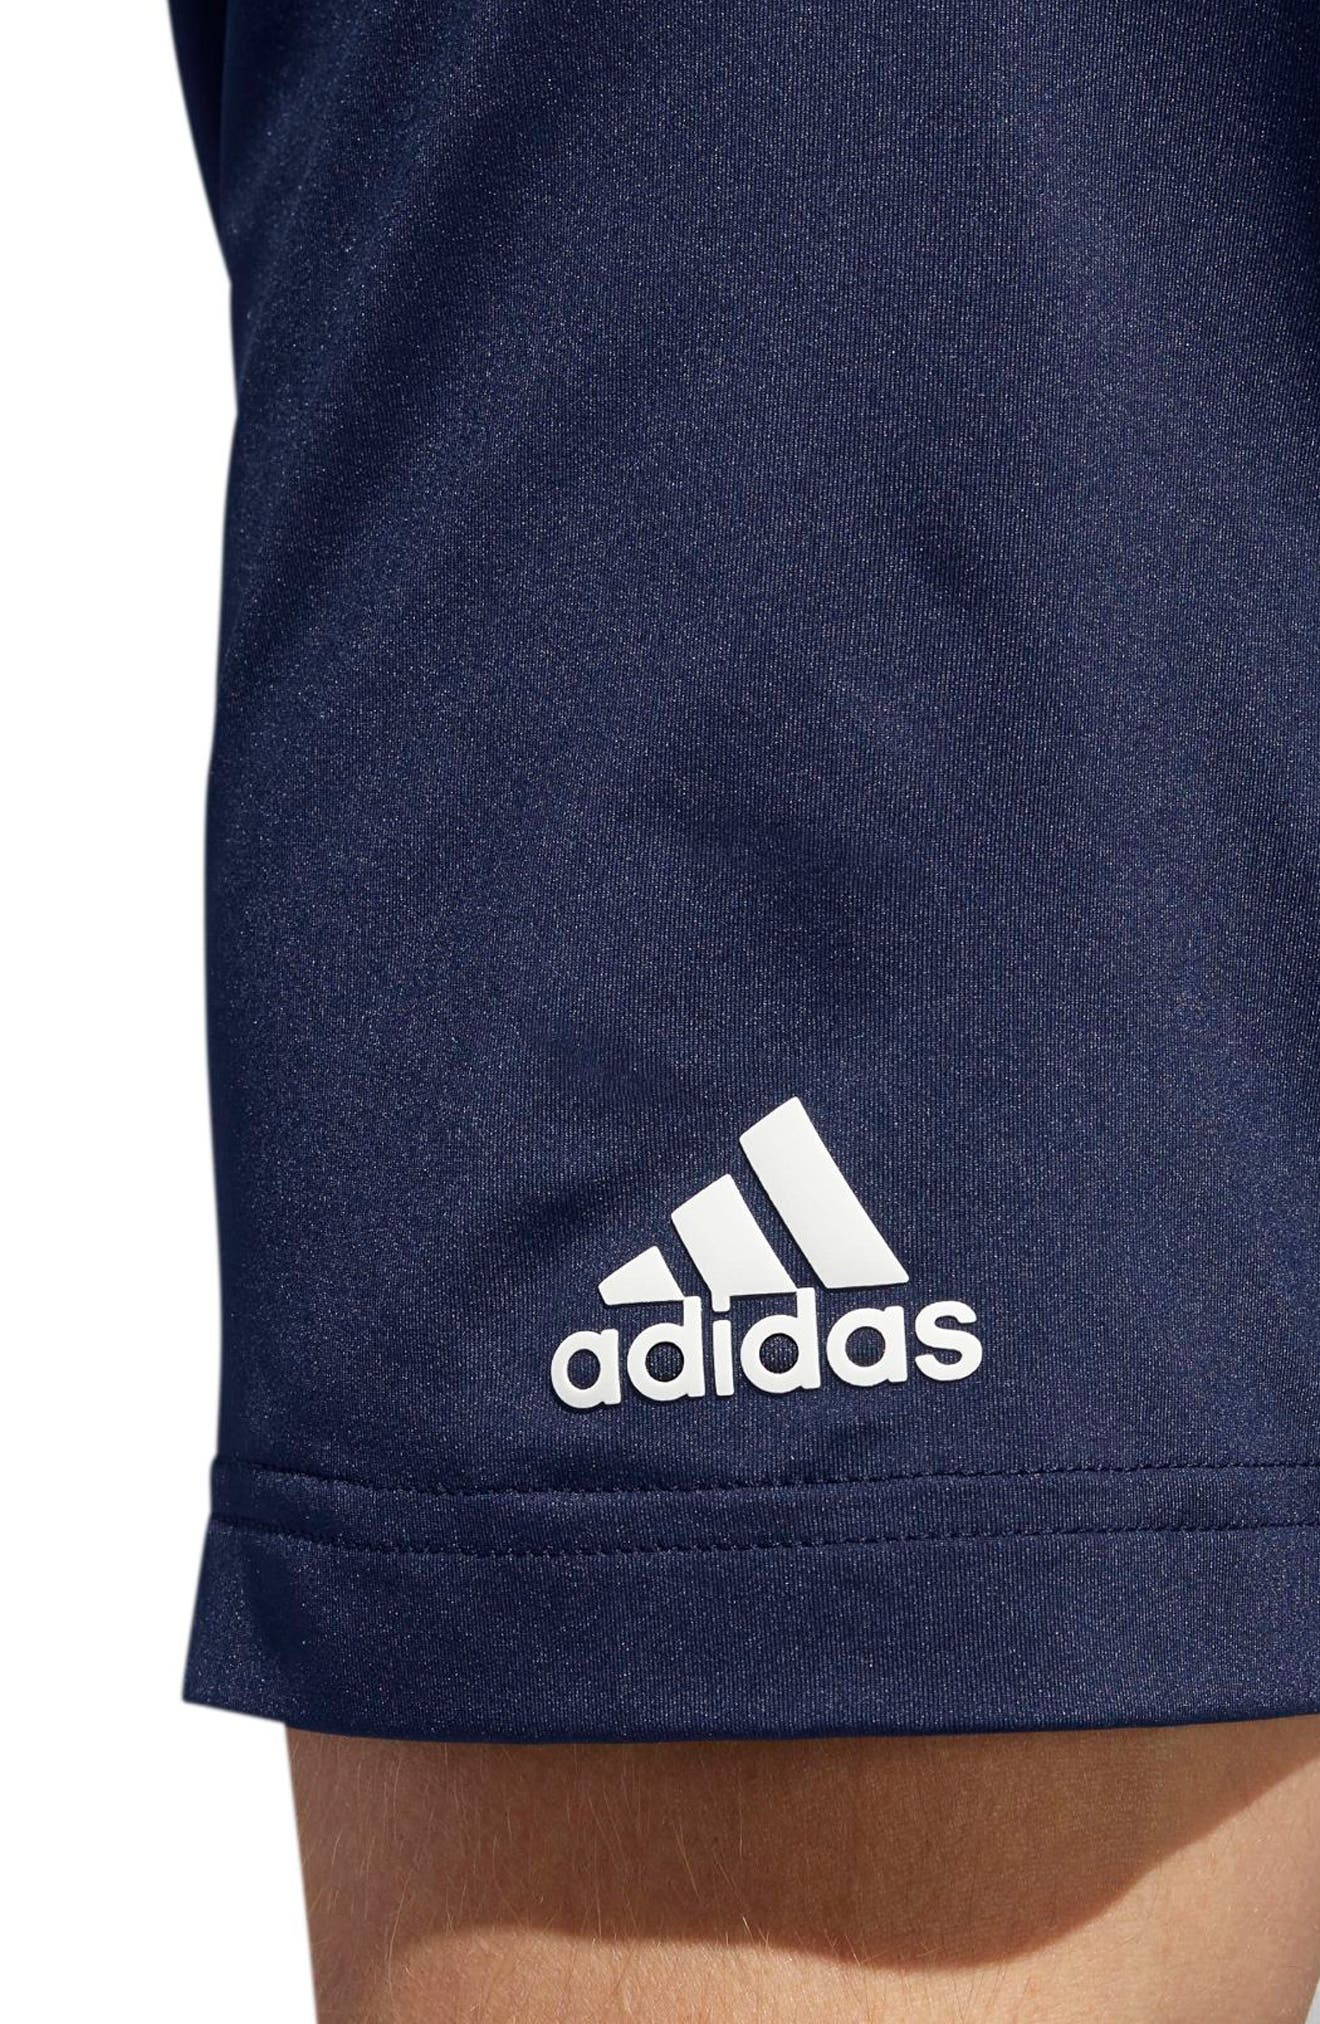 adidas Ultimate Stripe Regular Fit Polo Shirt,                             Alternate thumbnail 4, color,                             GREY/ NAVY